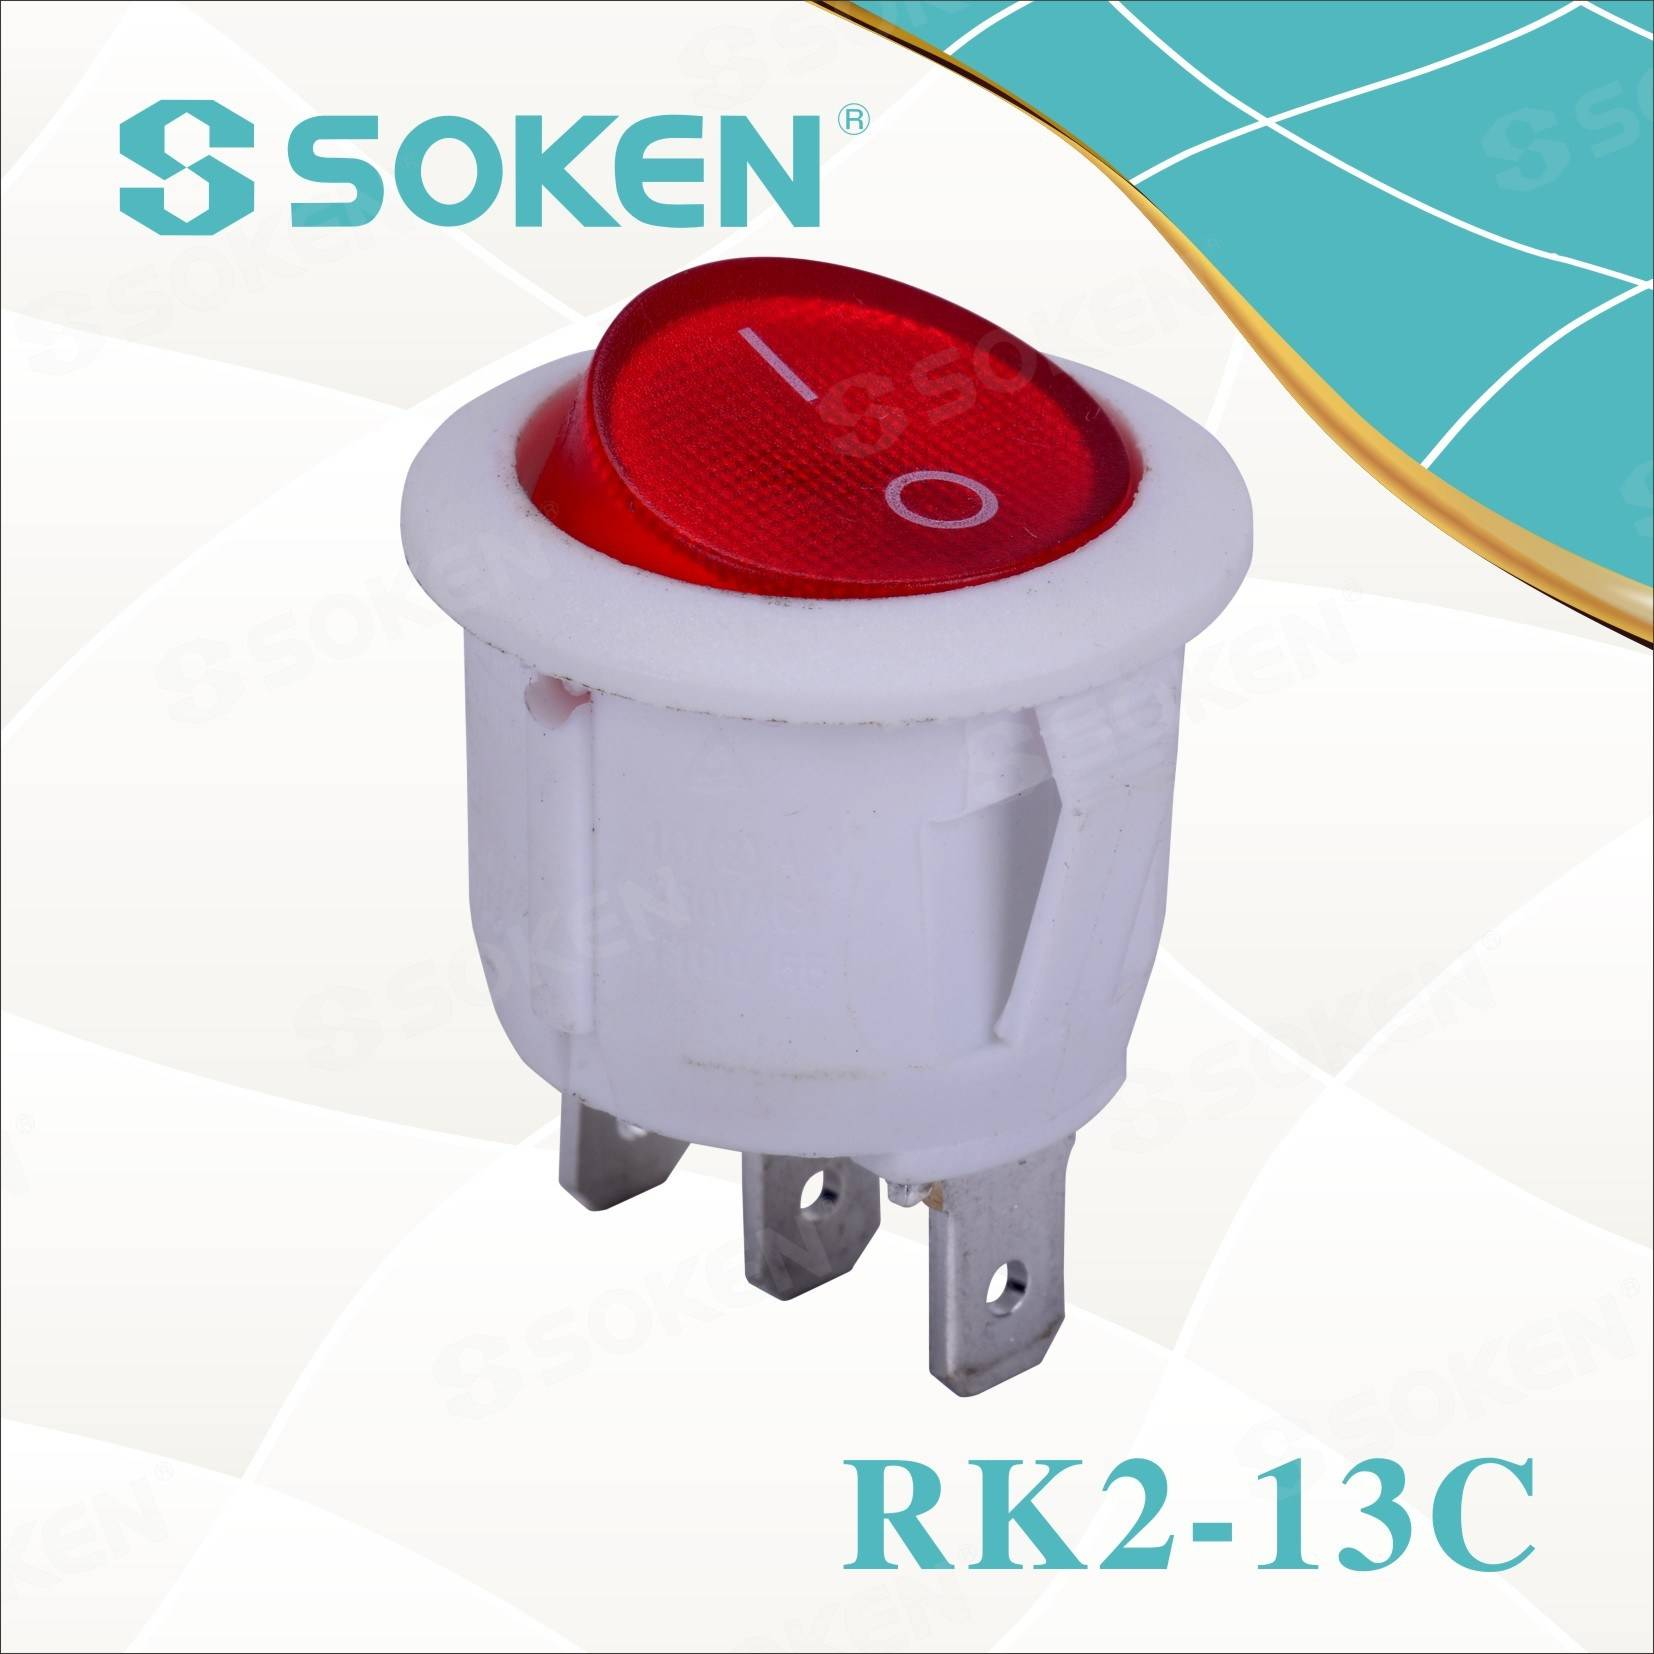 Soken Rk2-13c rodona sobre Rocker Switch off